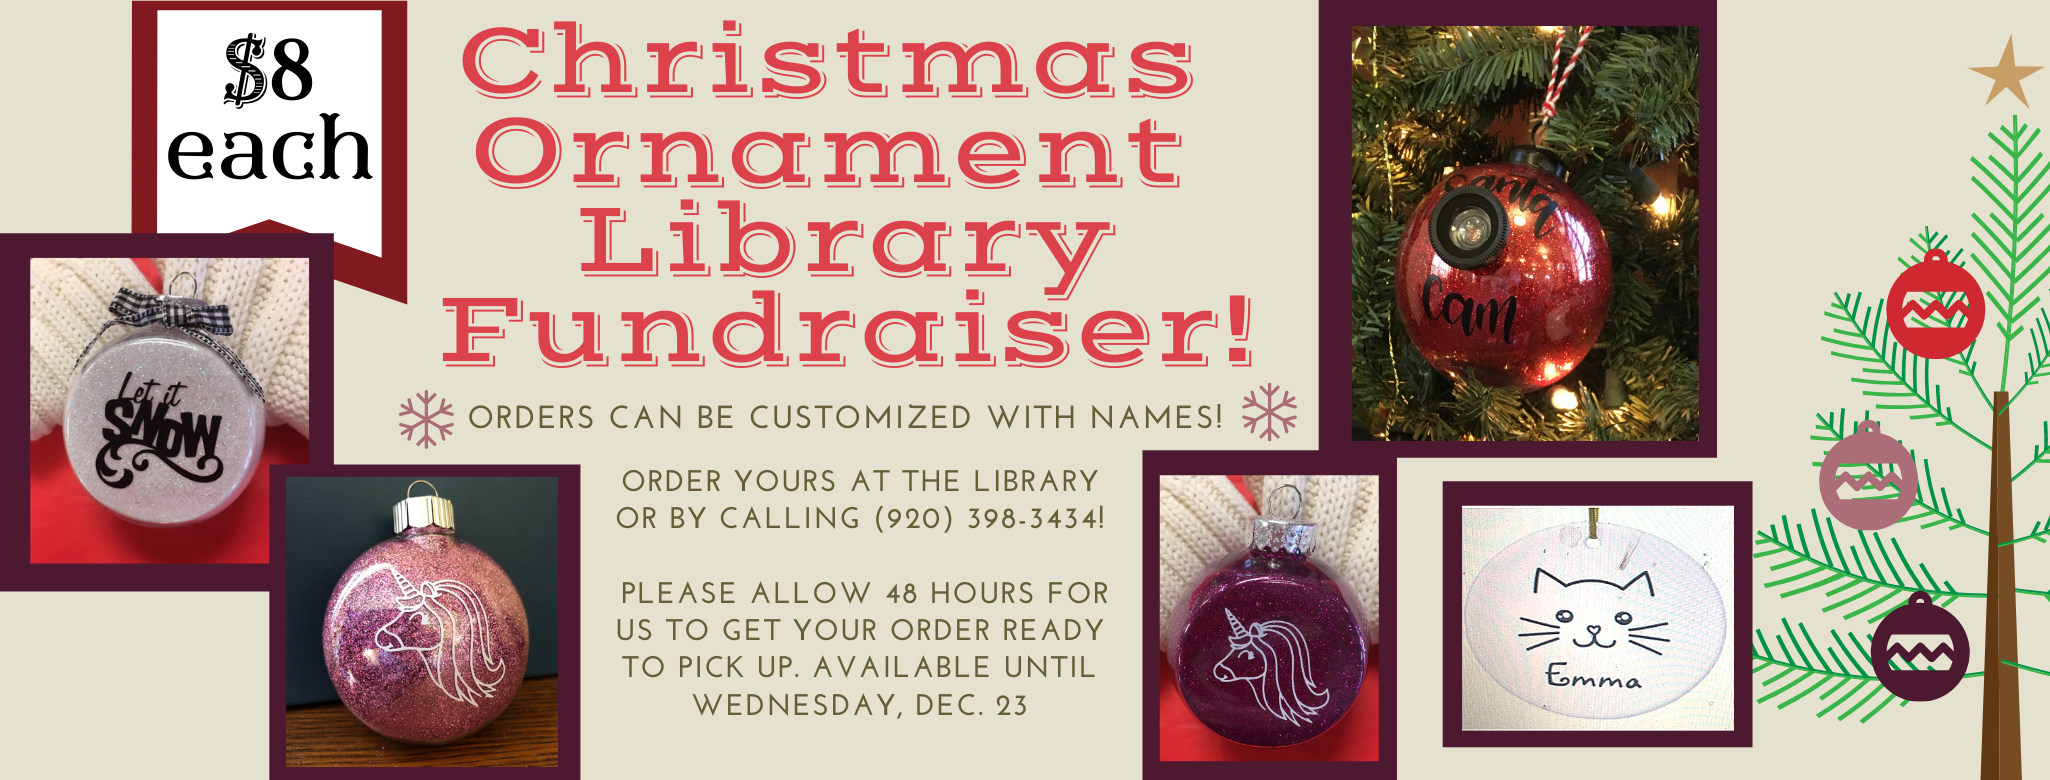 Christmas Ornament Fundraiser